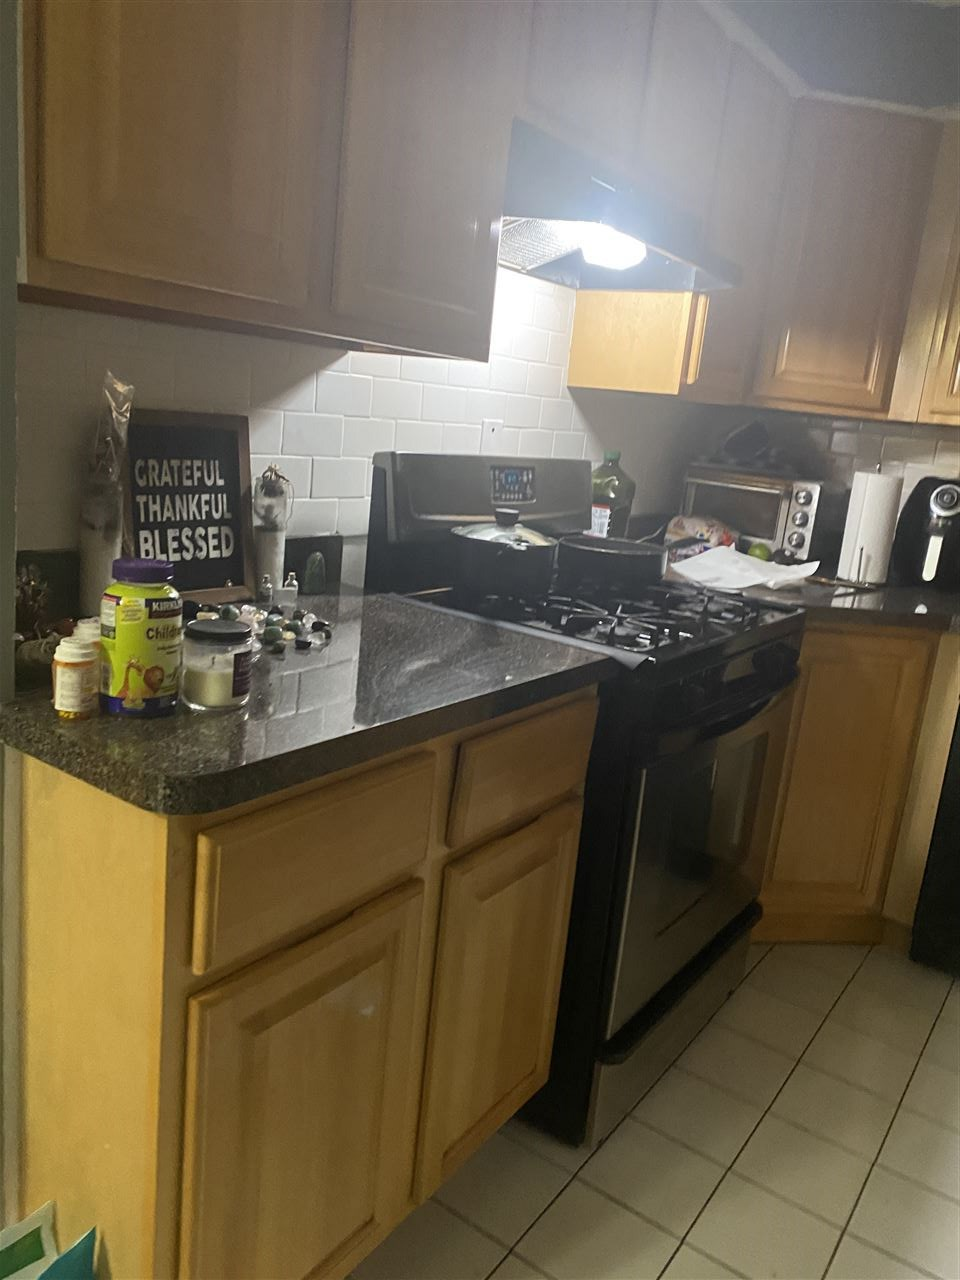 32 SUNSET AVE, Bayonne, New Jersey 07002, 7 Bedrooms Bedrooms, ,5 BathroomsBathrooms,Multifamily,For Sale,32 SUNSET AVE,210003585